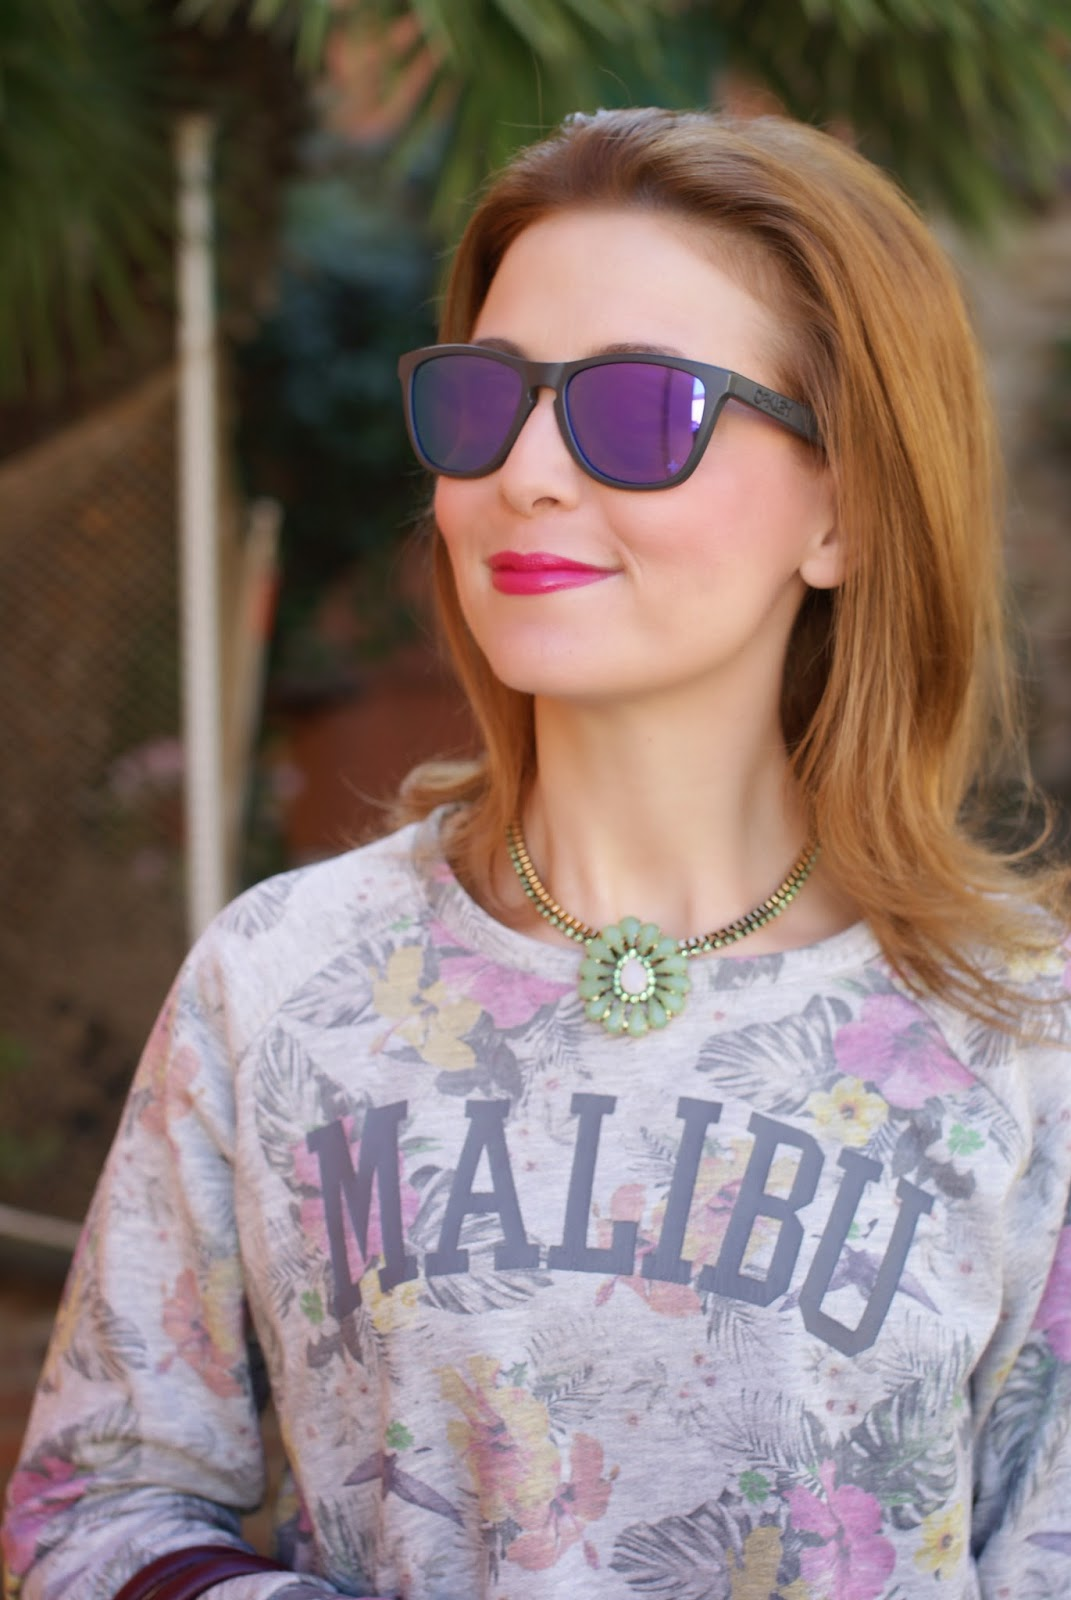 Malibu sweatshirt, Sodini bijoux collana, Oakley blue mirror sunglasses, Fashion and Cookies, fashion blogger